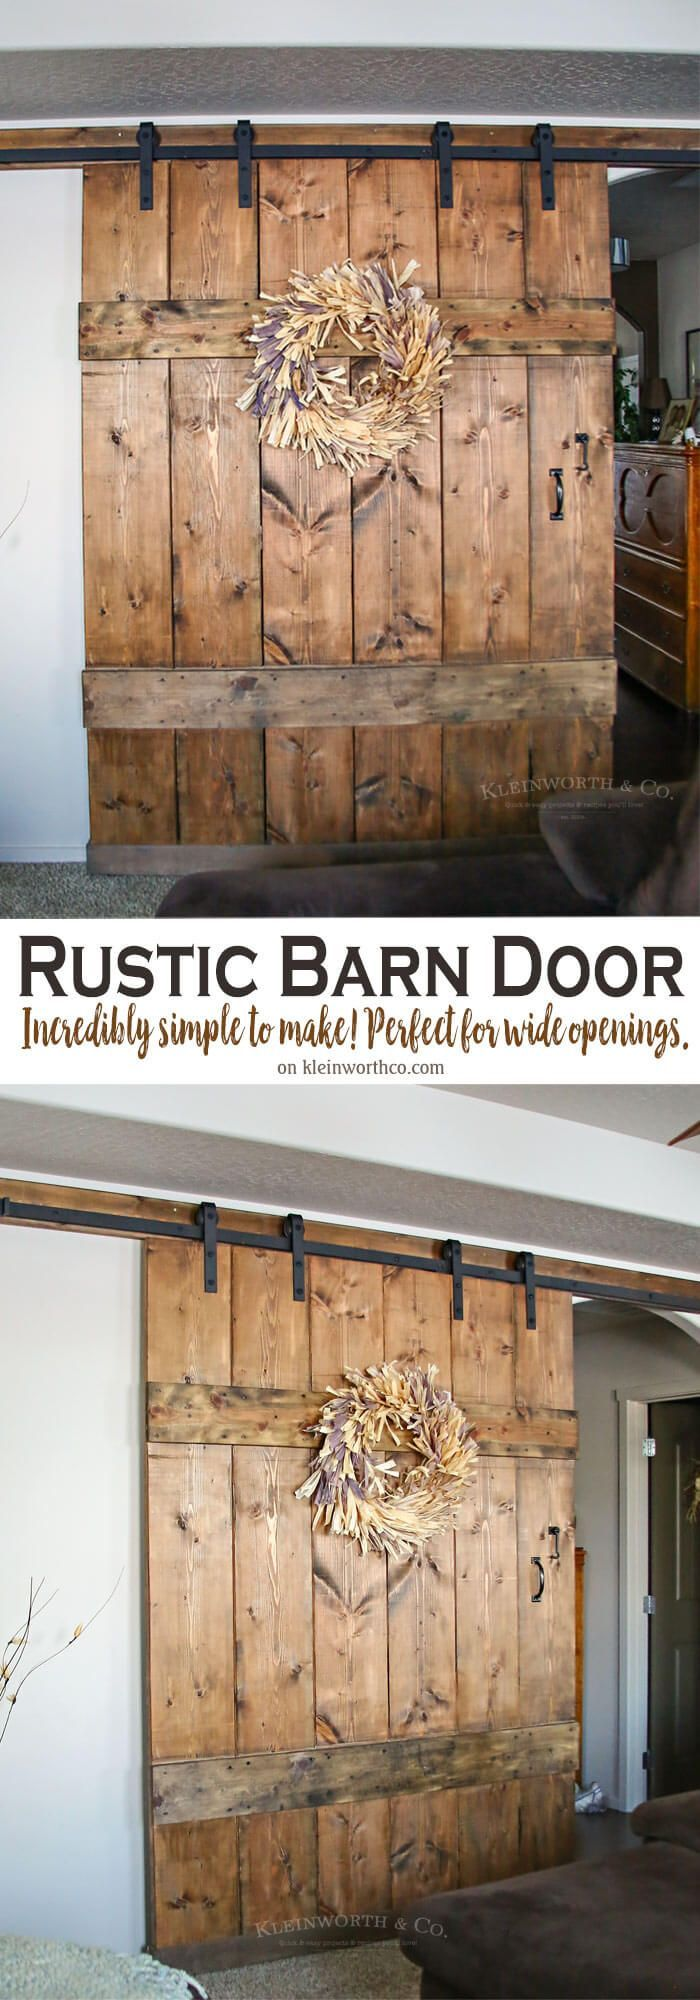 Wide Rustic Barn Door is 6 feet wide & made for extra large doorways. It's simple to make & adds functionality & rustic charm to your home. via @KleinworthCo